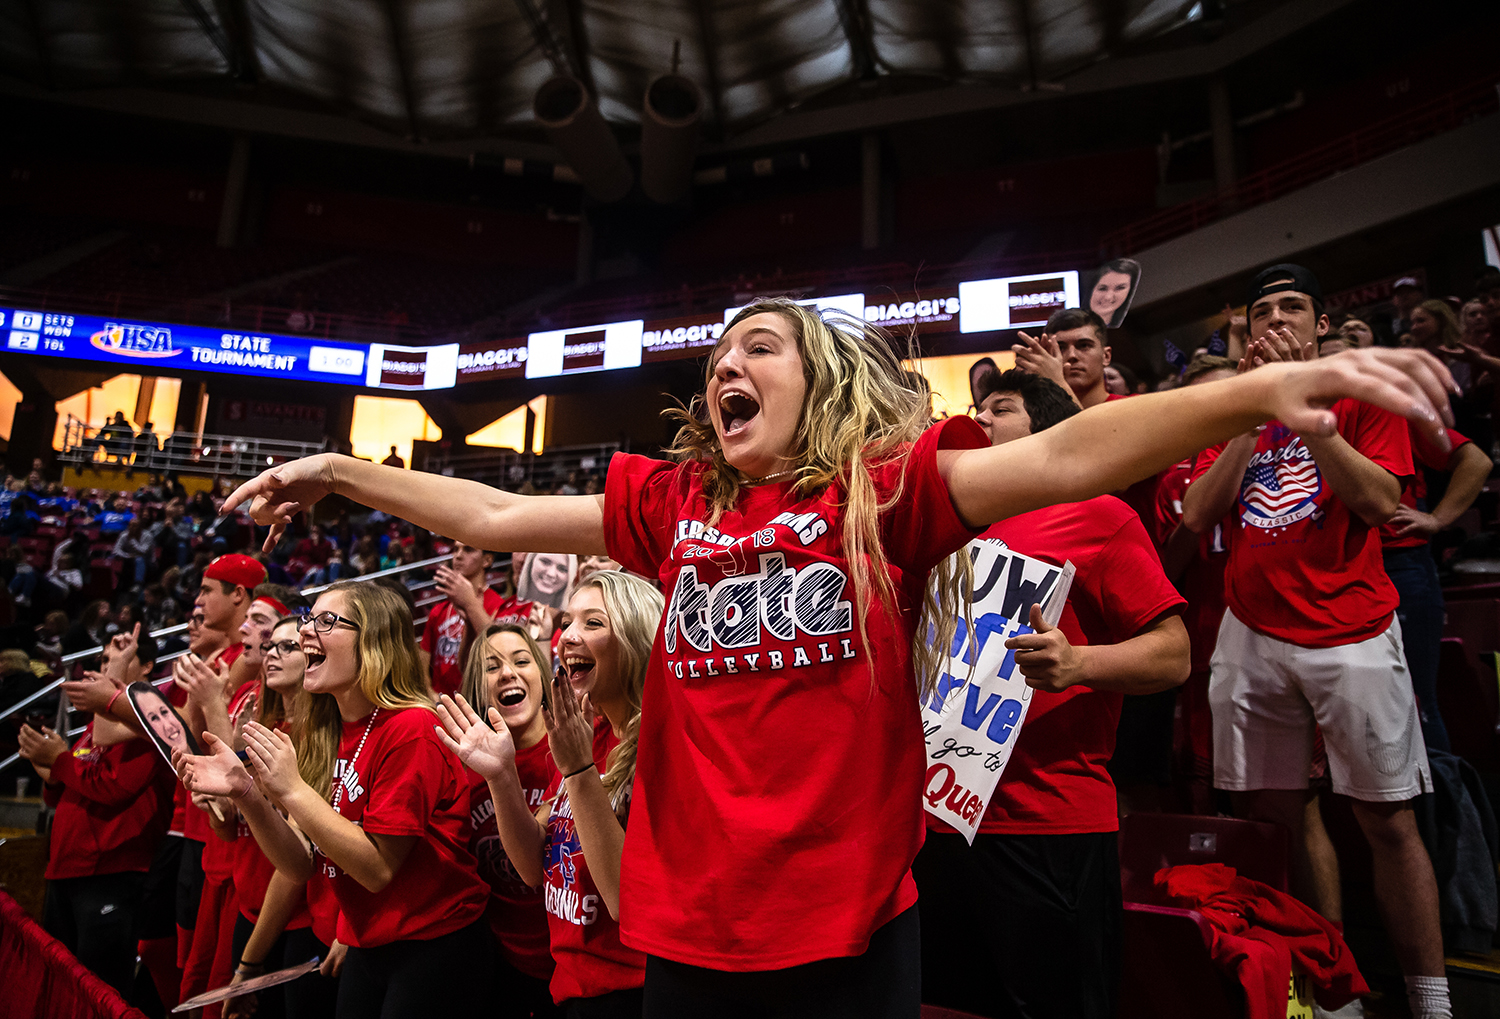 Pleasant Plains senior Abbie Boesdorfer cheers on the Cardinals as they take on Champaign St. Thomas More during the Class 2A IHSA Volleyball State Final Tournament semifinals at Redbird Arena, Friday, Nov. 9, 2018, in Normal, Ill. [Justin L. Fowler/The State Journal-Register]